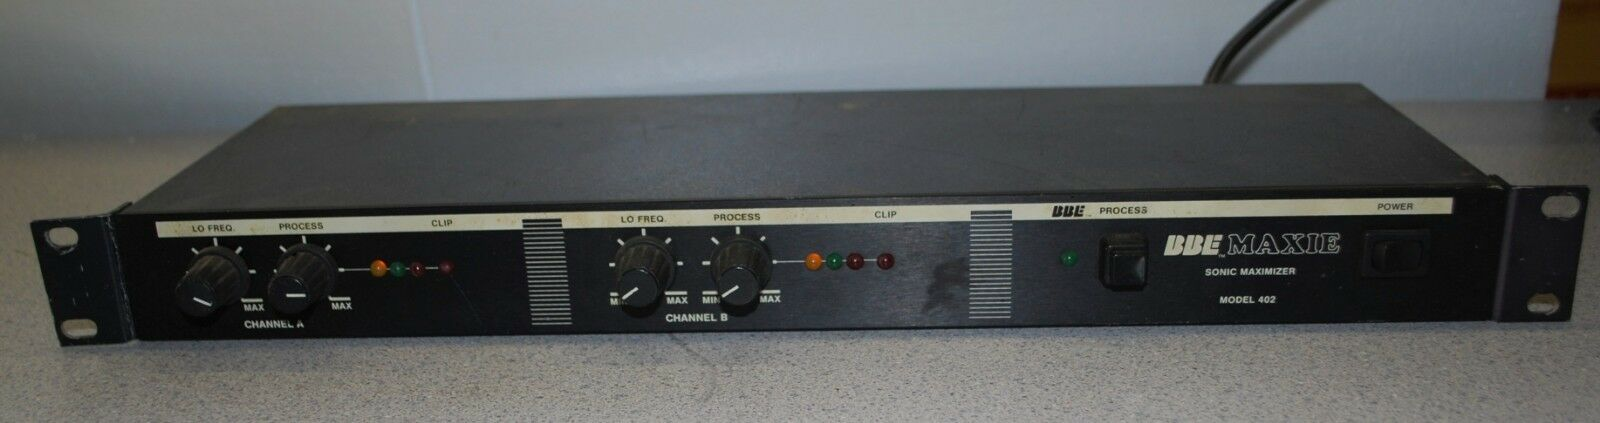 BBE MODEL 402 MAXIE SONIC MAXIMIZER RACK MOUNT UNIT-NICE-TESTED-SOUND ENHANCER